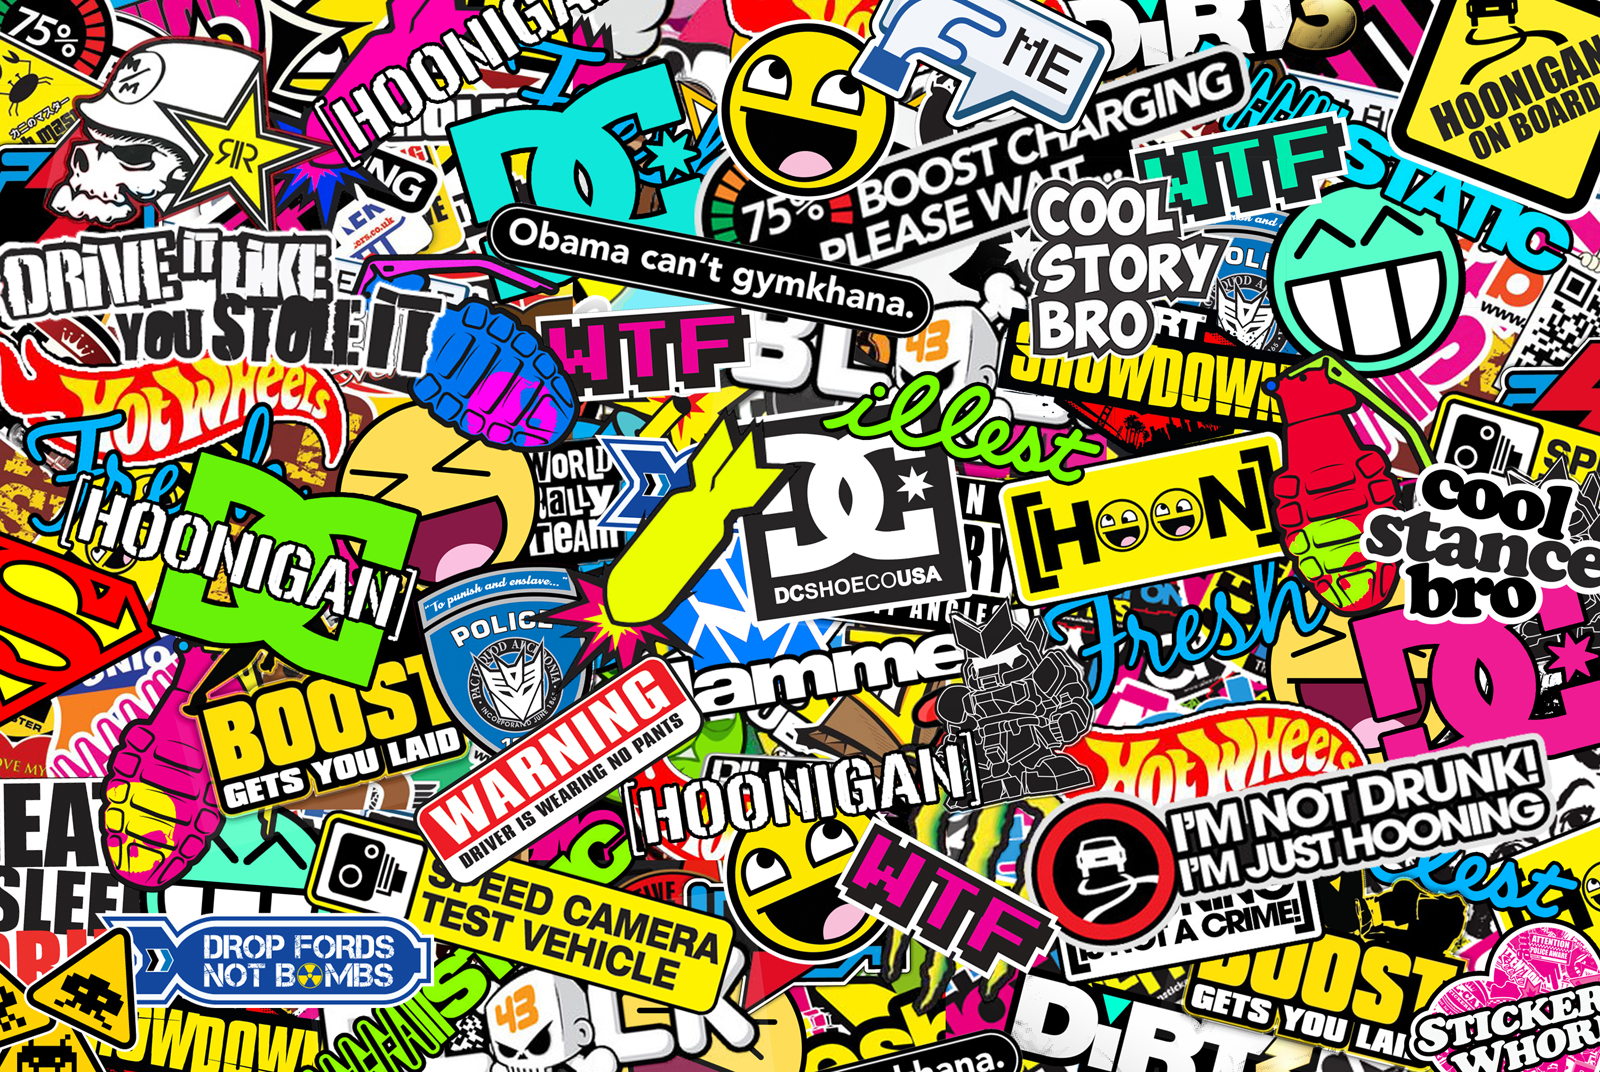 Hoonigan sticker bombing by bora888 1600x1072